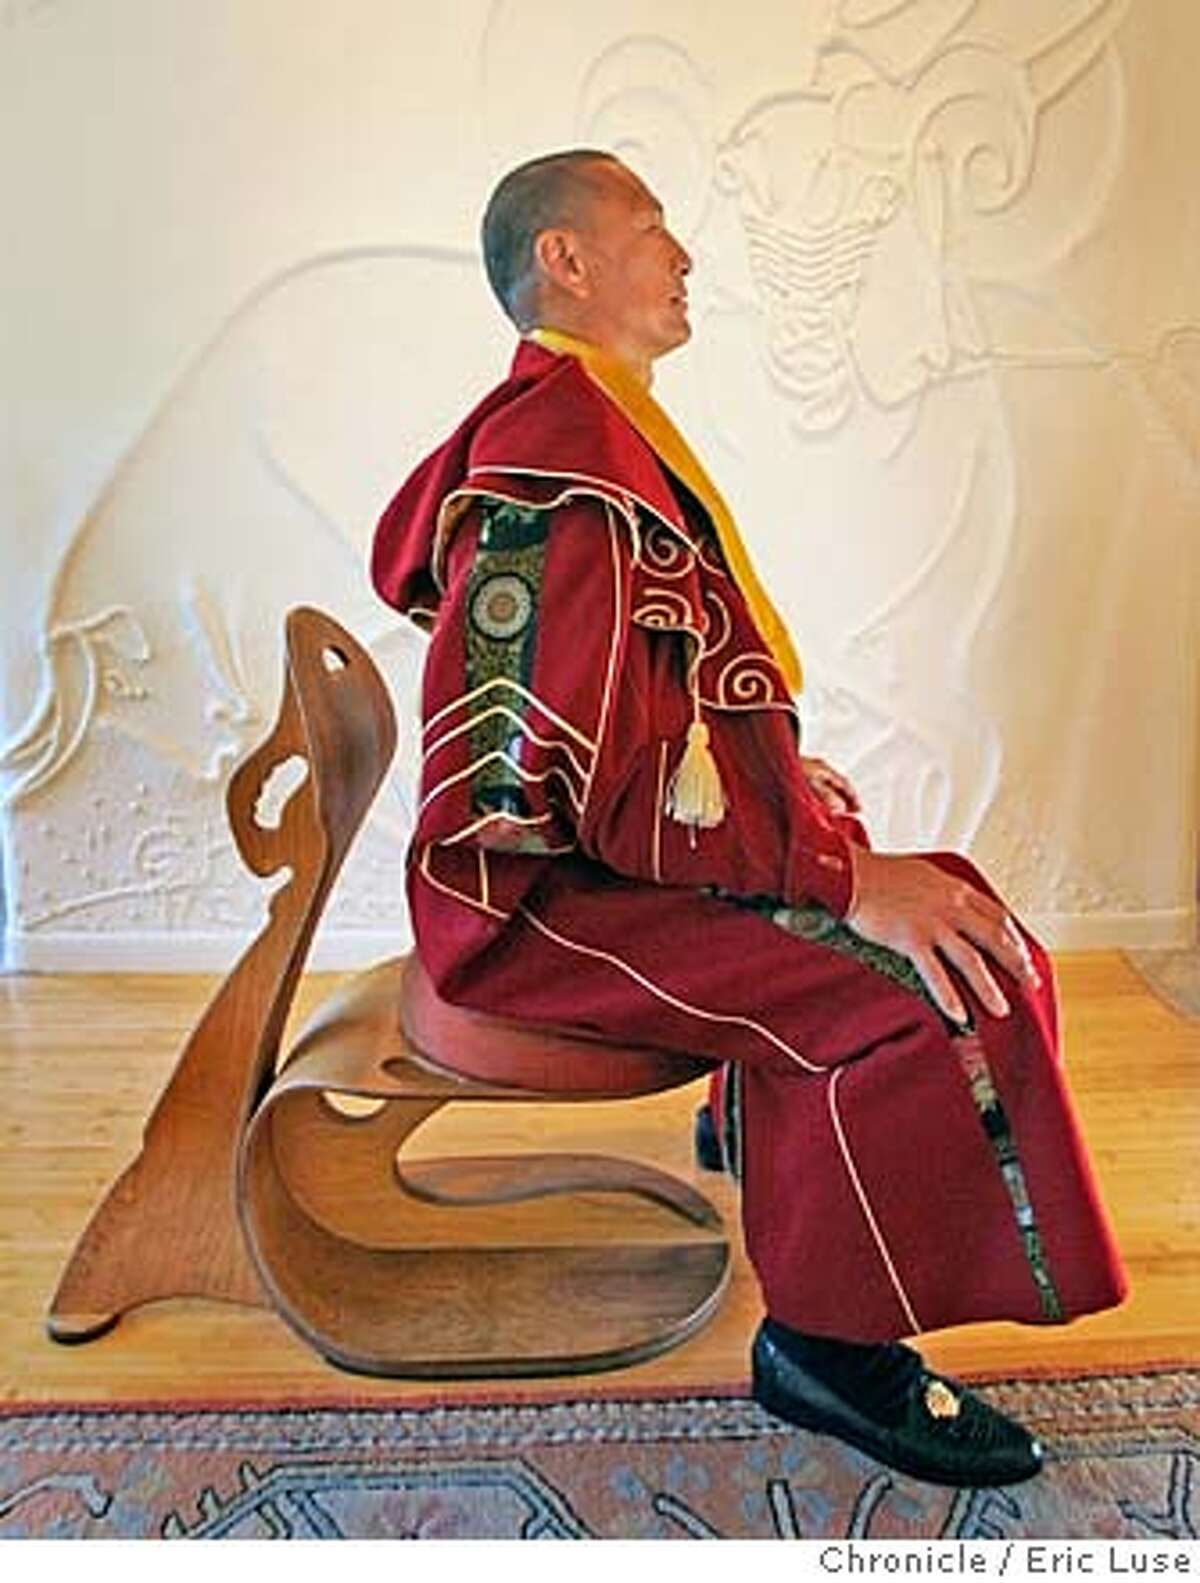 architect_tsui100.JPG Architect Eugene Tsui at home in Emeryville. He is wearing a self designed cape of moving architectural clothing that protects from elements and adapts to physical activity. He also designed the chair based on principals of the least amount of material used for maximum strength. This wall has the symbols of a Ram's head and 2 bulls symbolic of his children's signs. Photographer: Eric Luse / The Chronicle names (cq) from source Eugene Tsui MANDATORY CREDIT FOR PHOTOG AND SF CHRONICLE/NO SALES-MAGS OUT